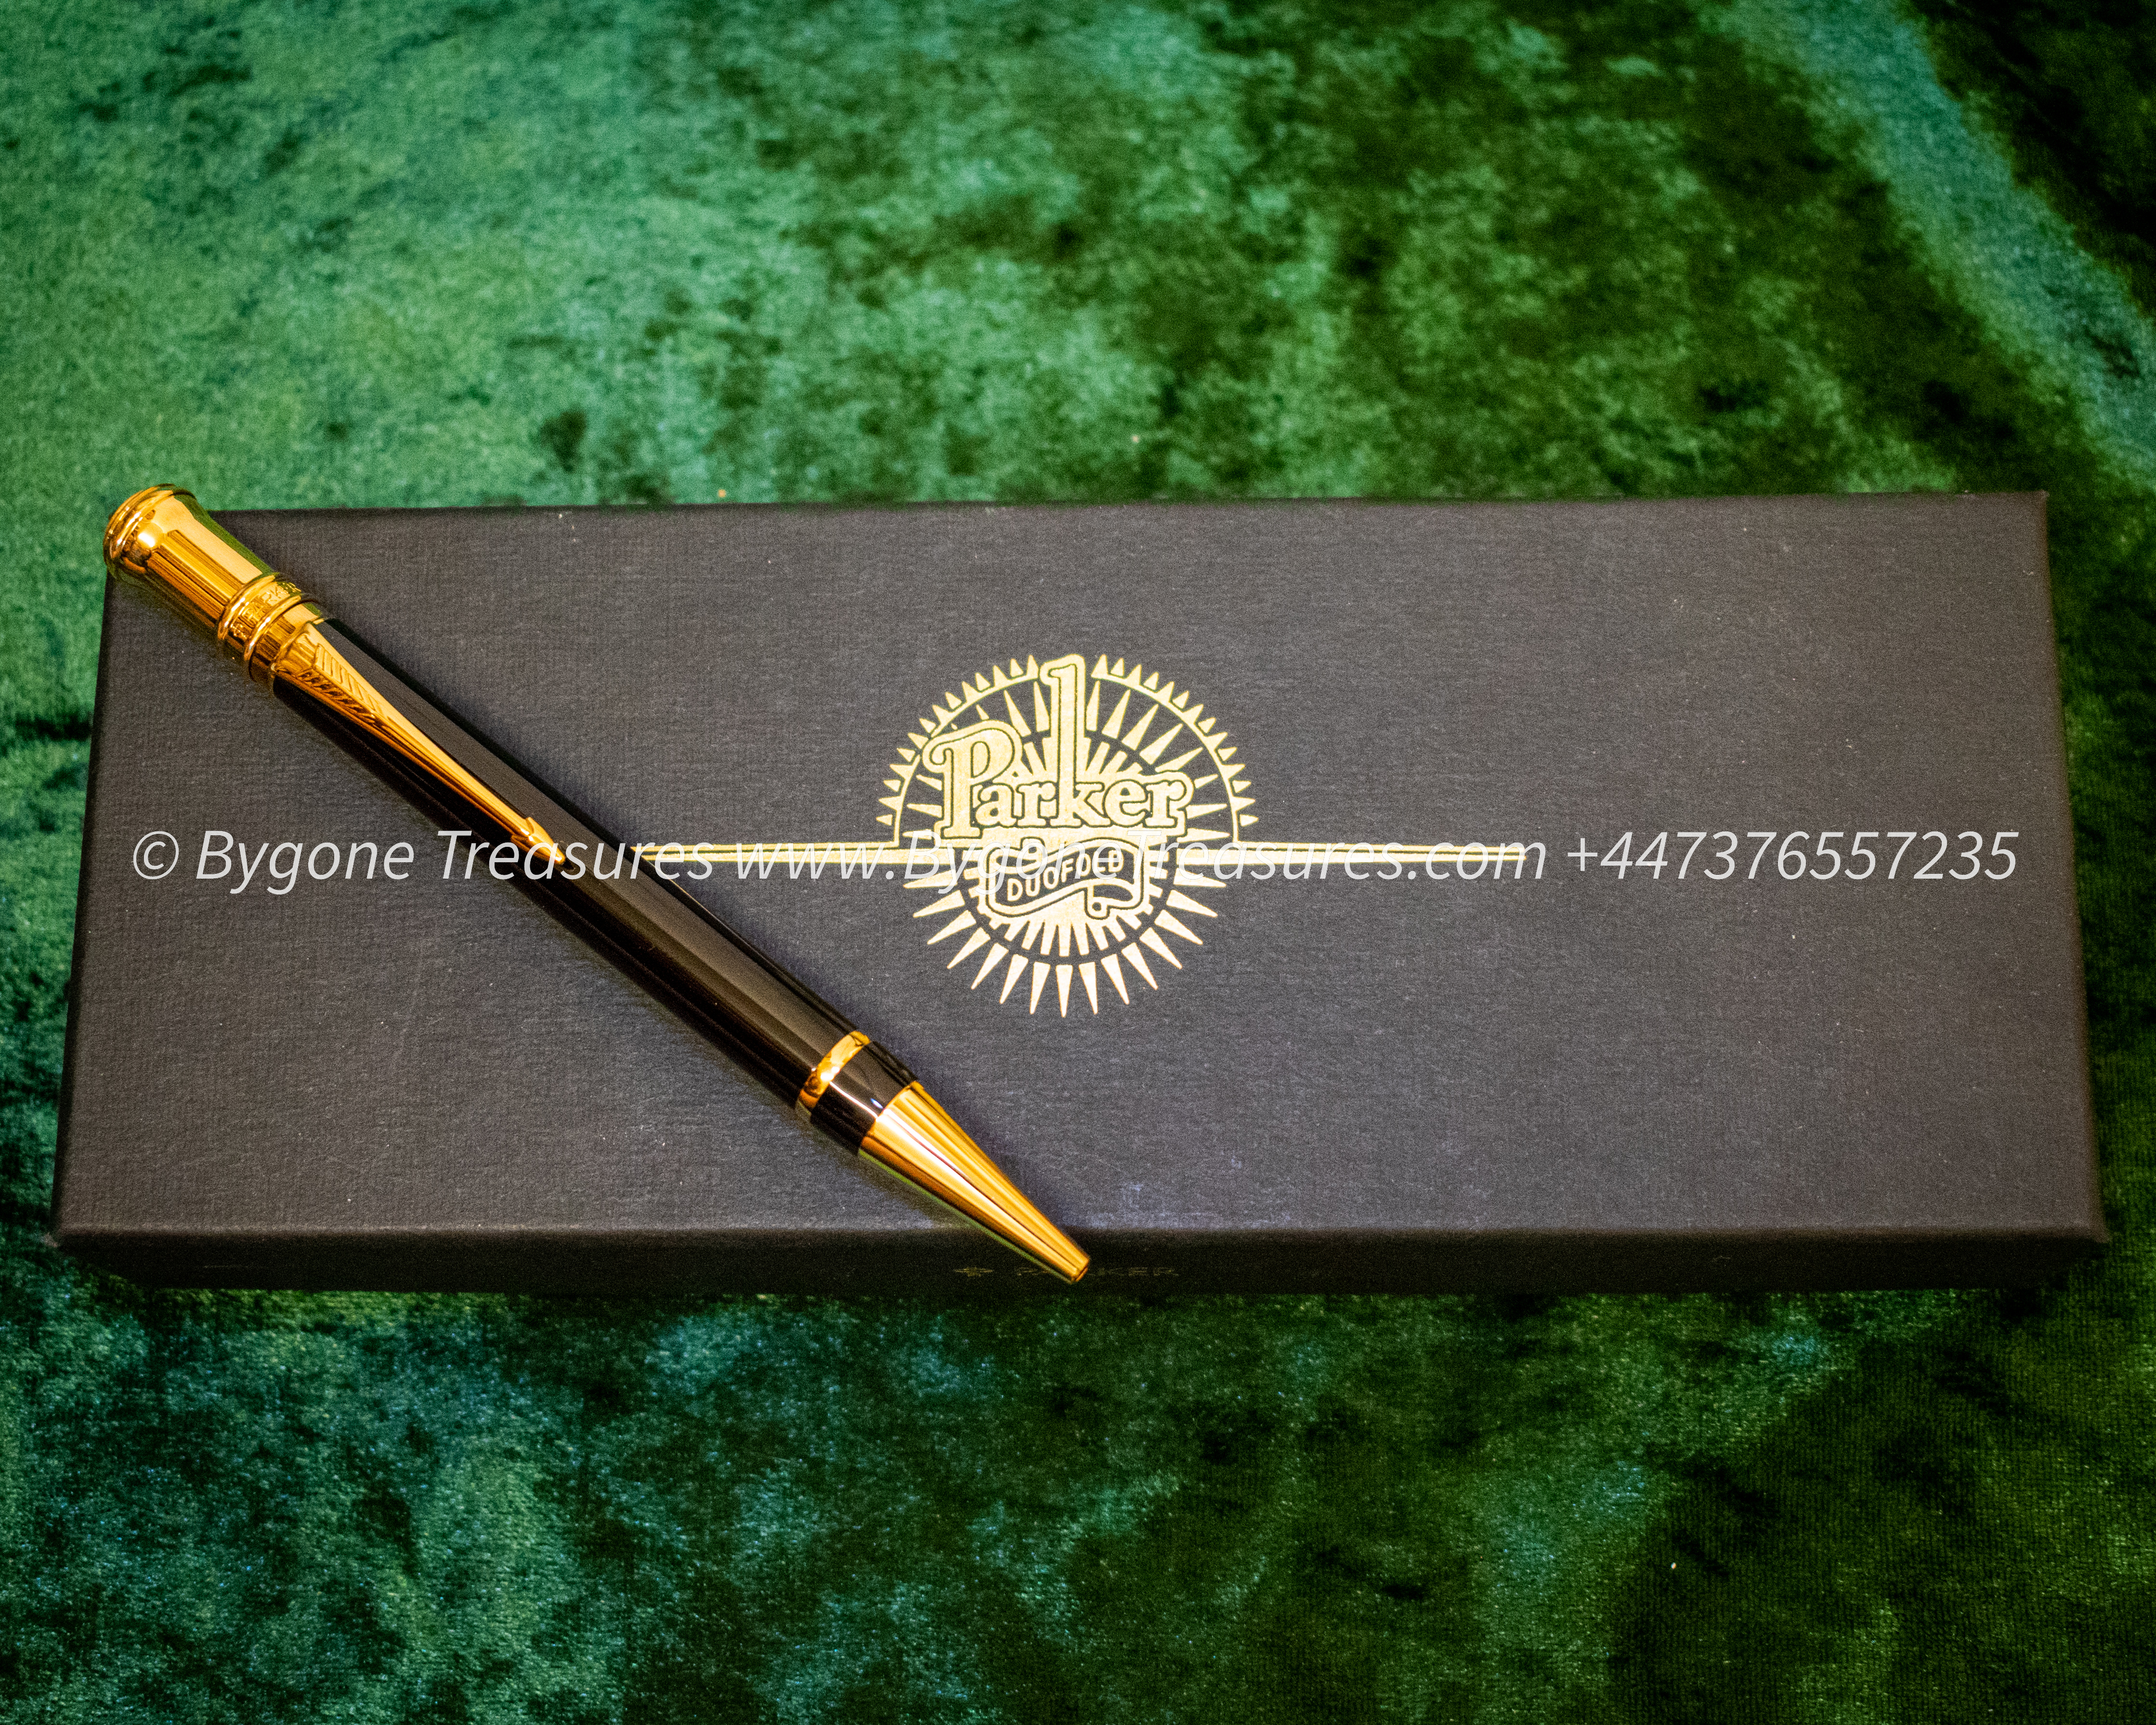 Parker Duofold black Ball Pen 23K gold plating in box with certificate-01